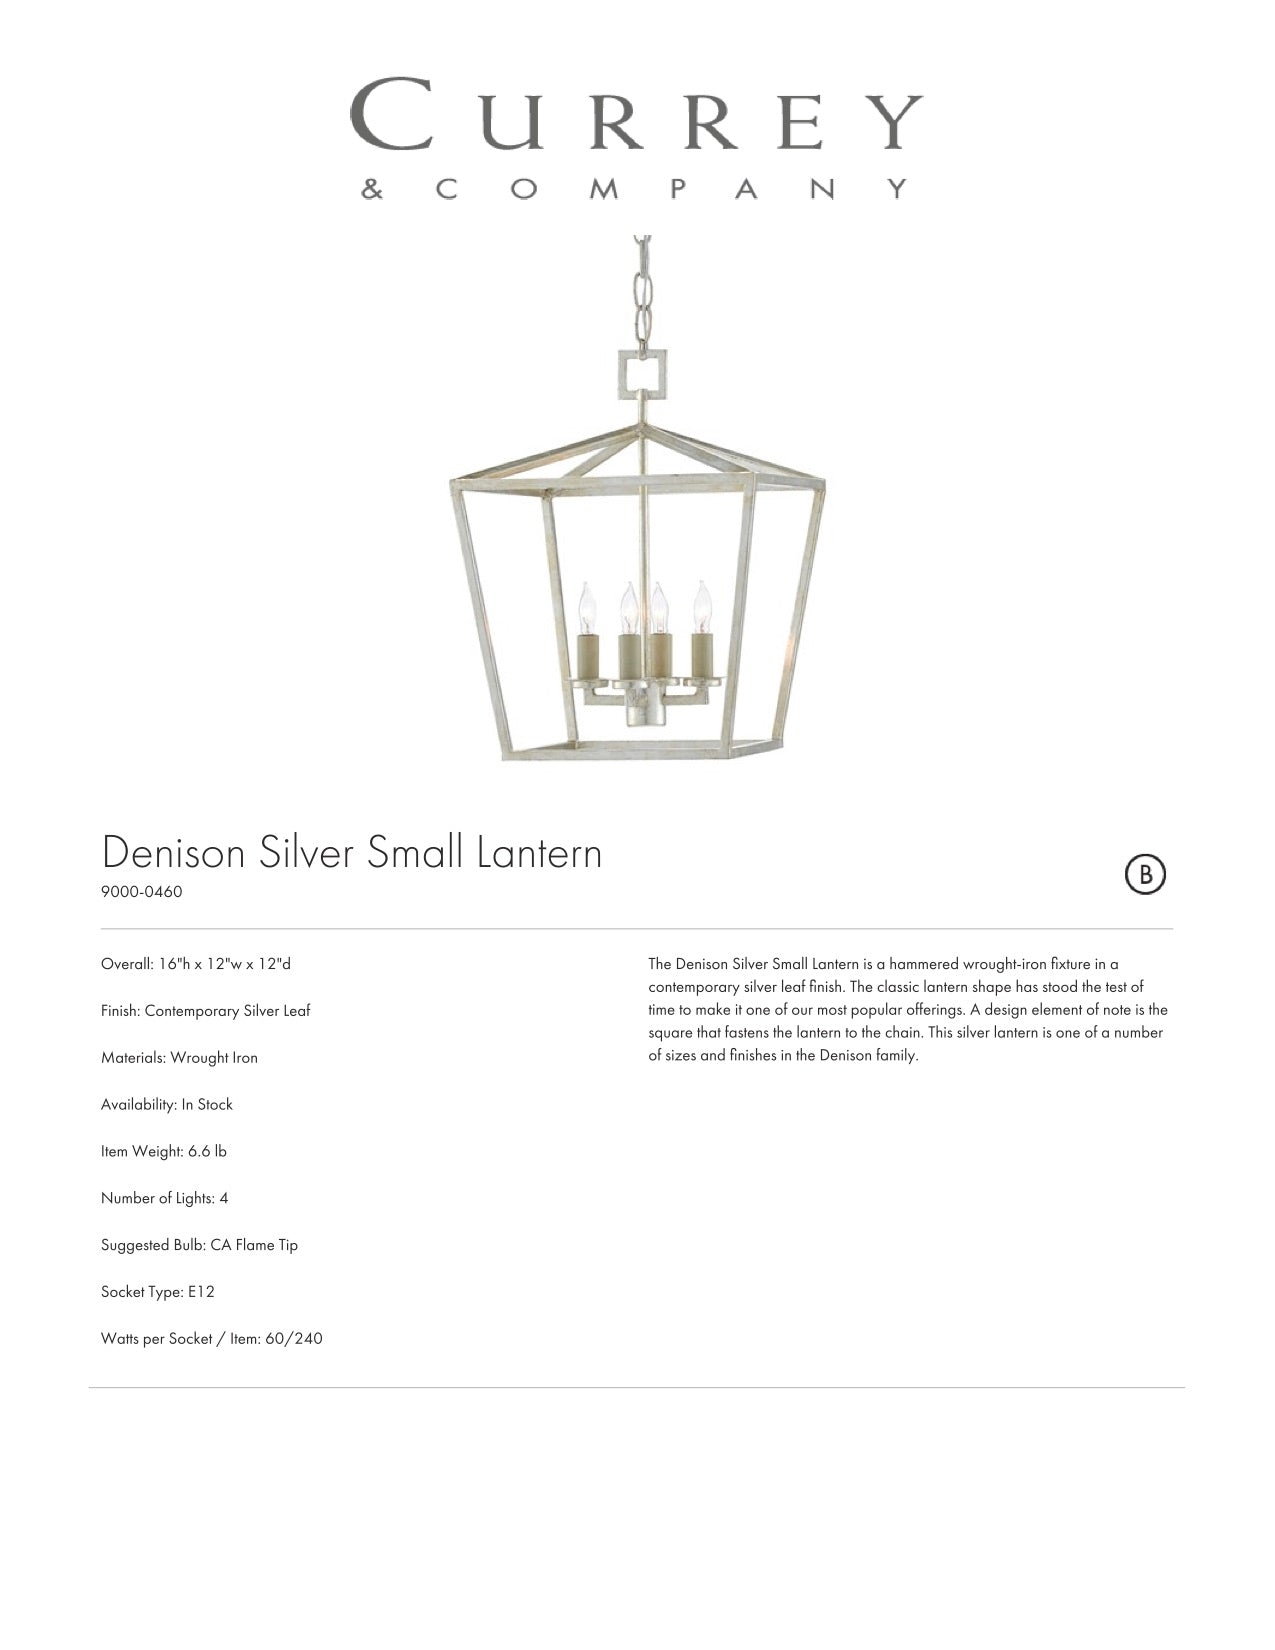 Currey & Company Denison Silver Small Lantern Tearsheet